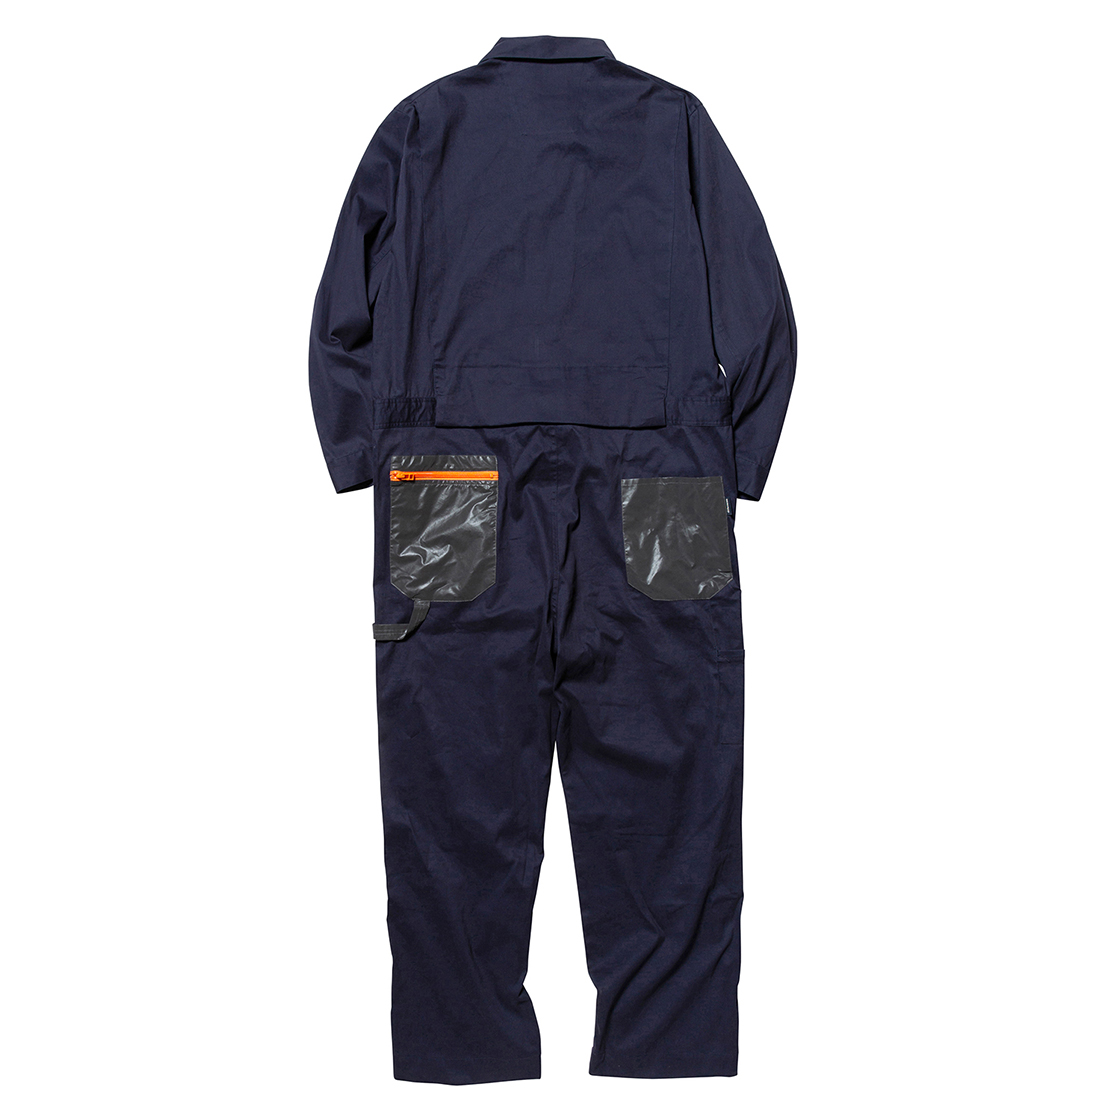 Bedford Overalls